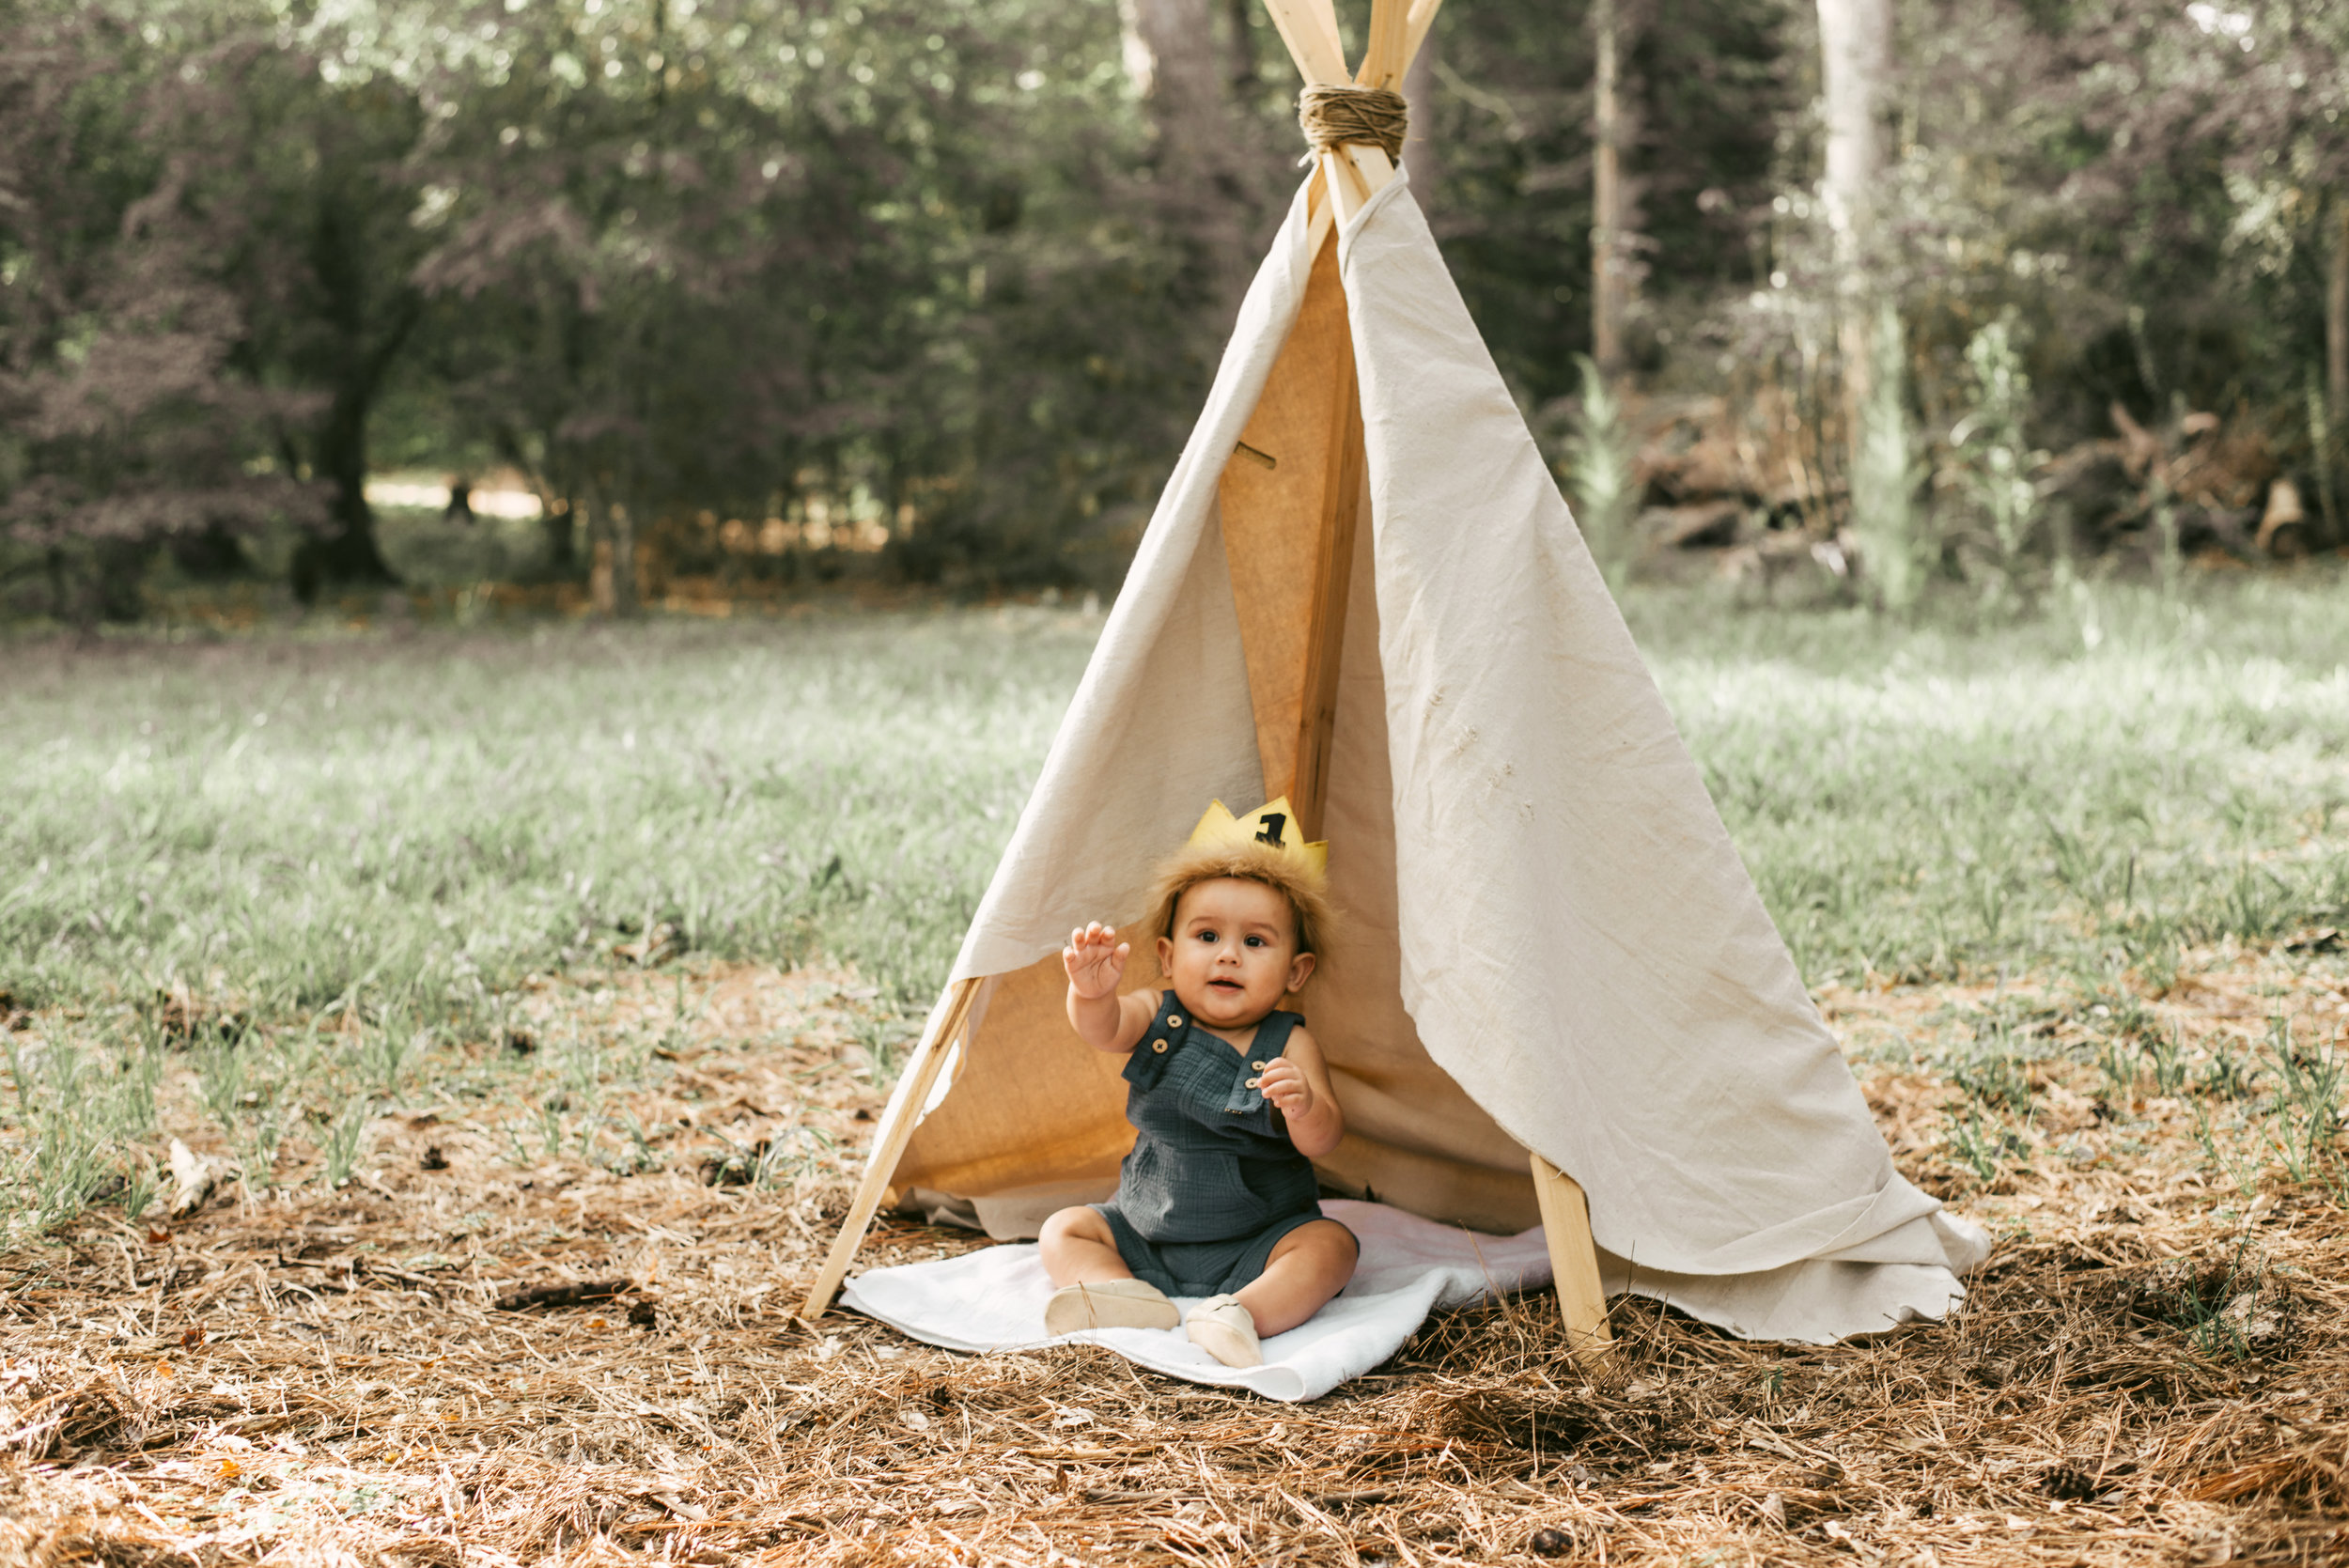 Rawr!!   Fun Fact: The only reason Ivan didn't crawl out of the teepee was because he did not like the texture of the grass. (works for me!!)